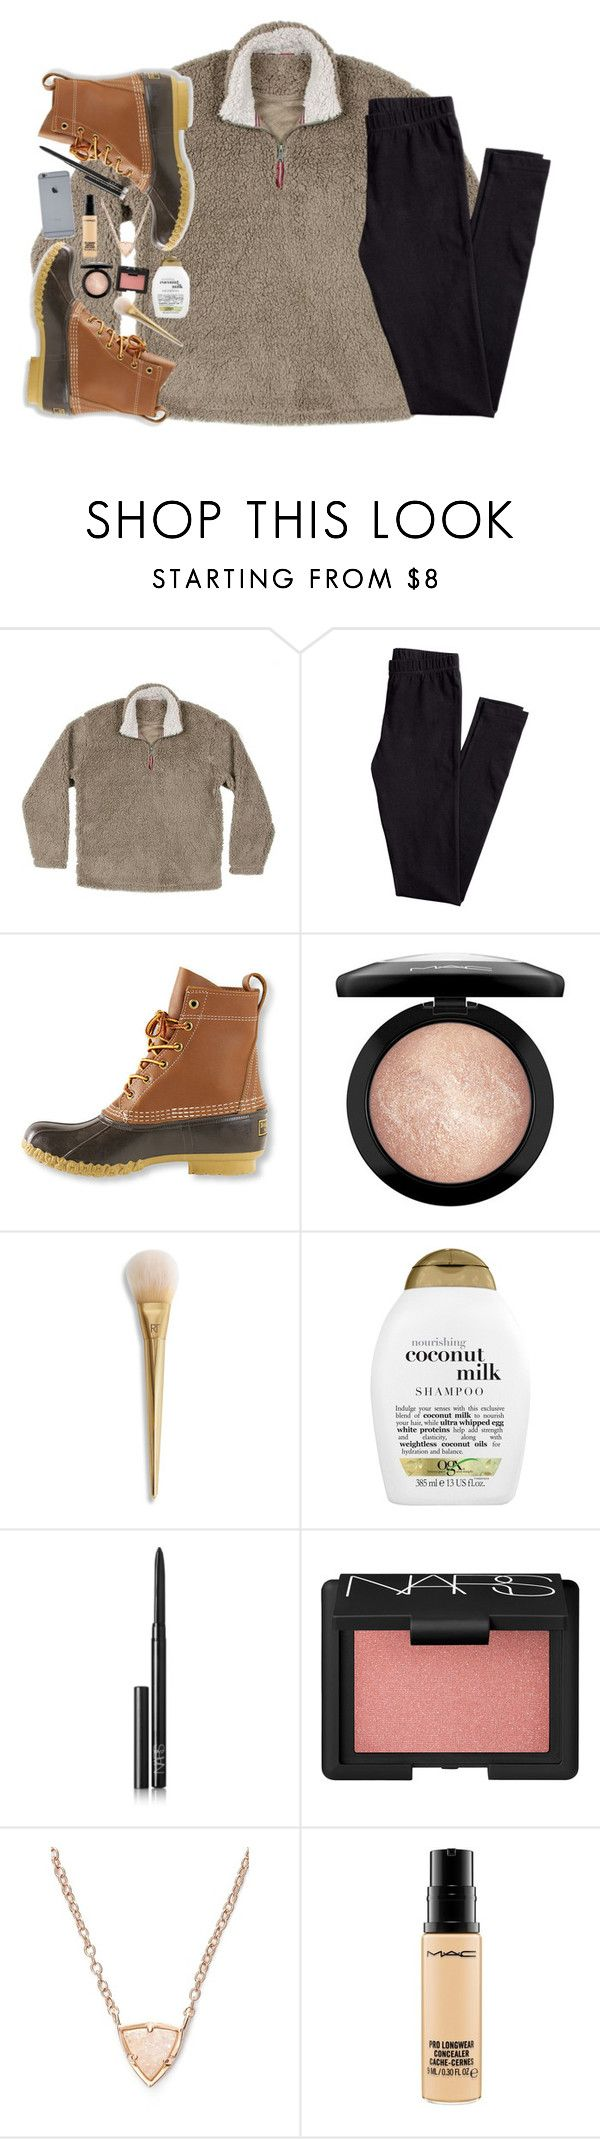 """""""weekly update in the d!"""" by lydia-hh ❤ liked on Polyvore featuring H&M, L.L.Bean, MAC Cosmetics, Organix, NARS Cosmetics and Kendra Scott"""